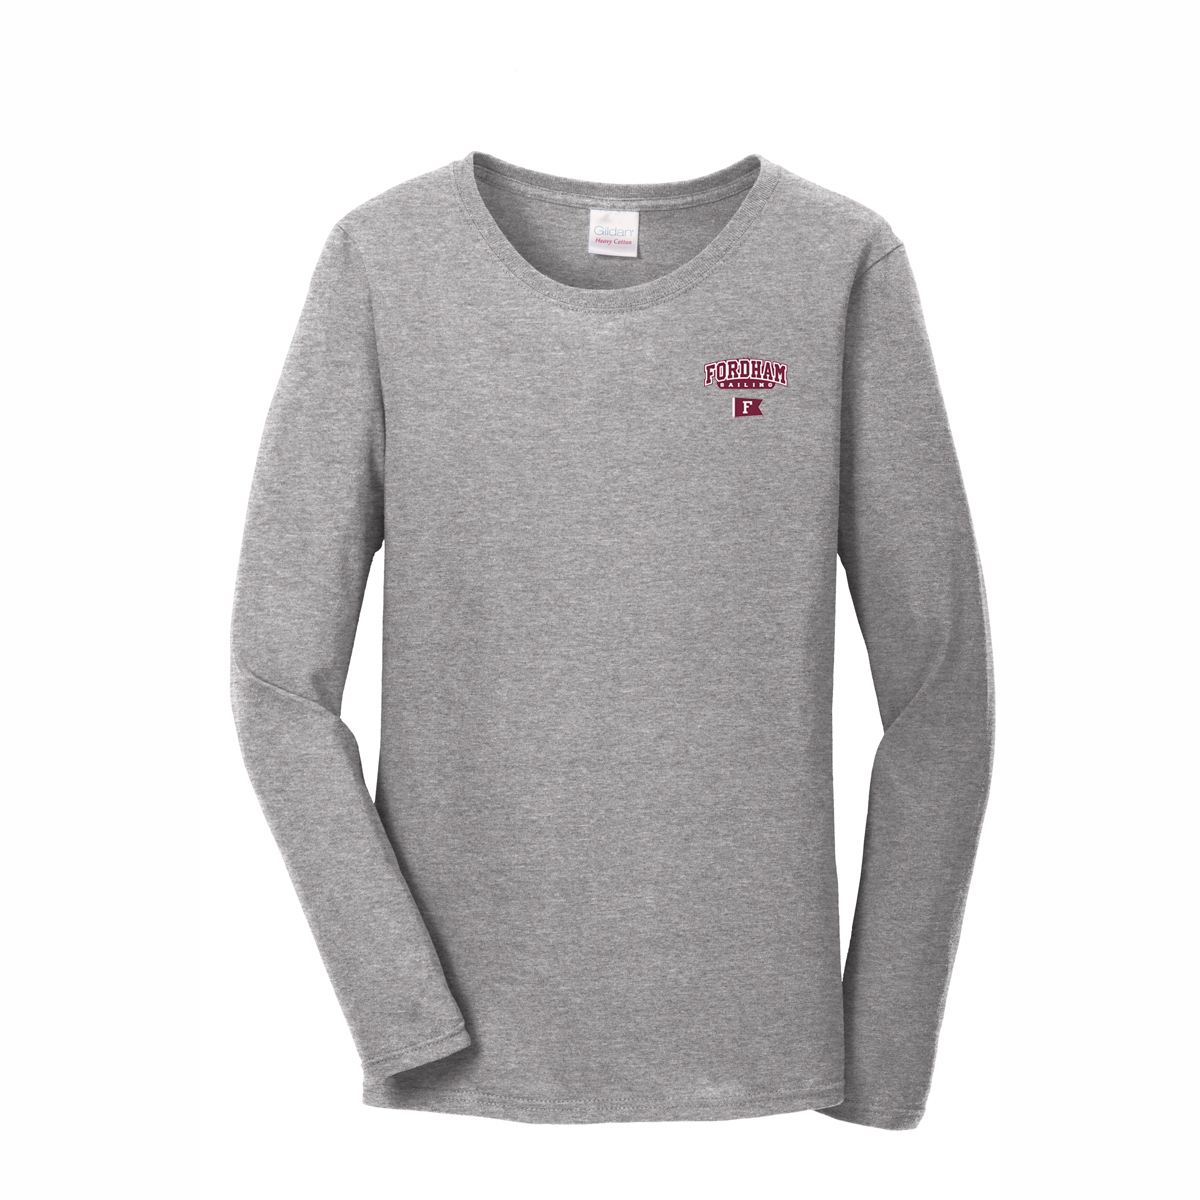 Fordham University Sailing - Men's Long Sleeve Cotton Tee